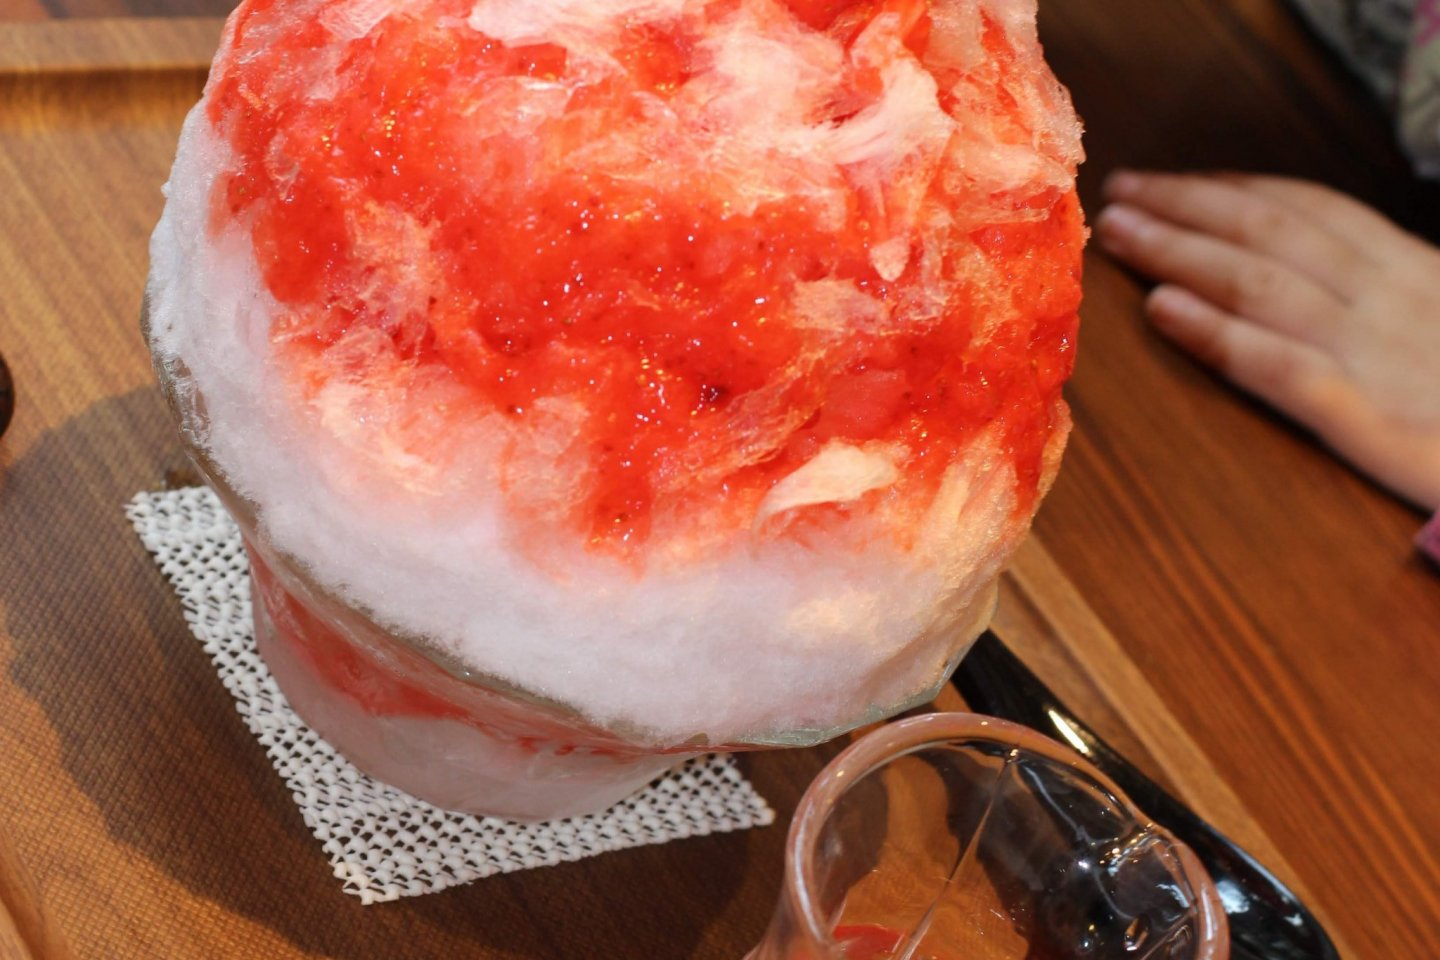 Strawberry cream flavor snow cone